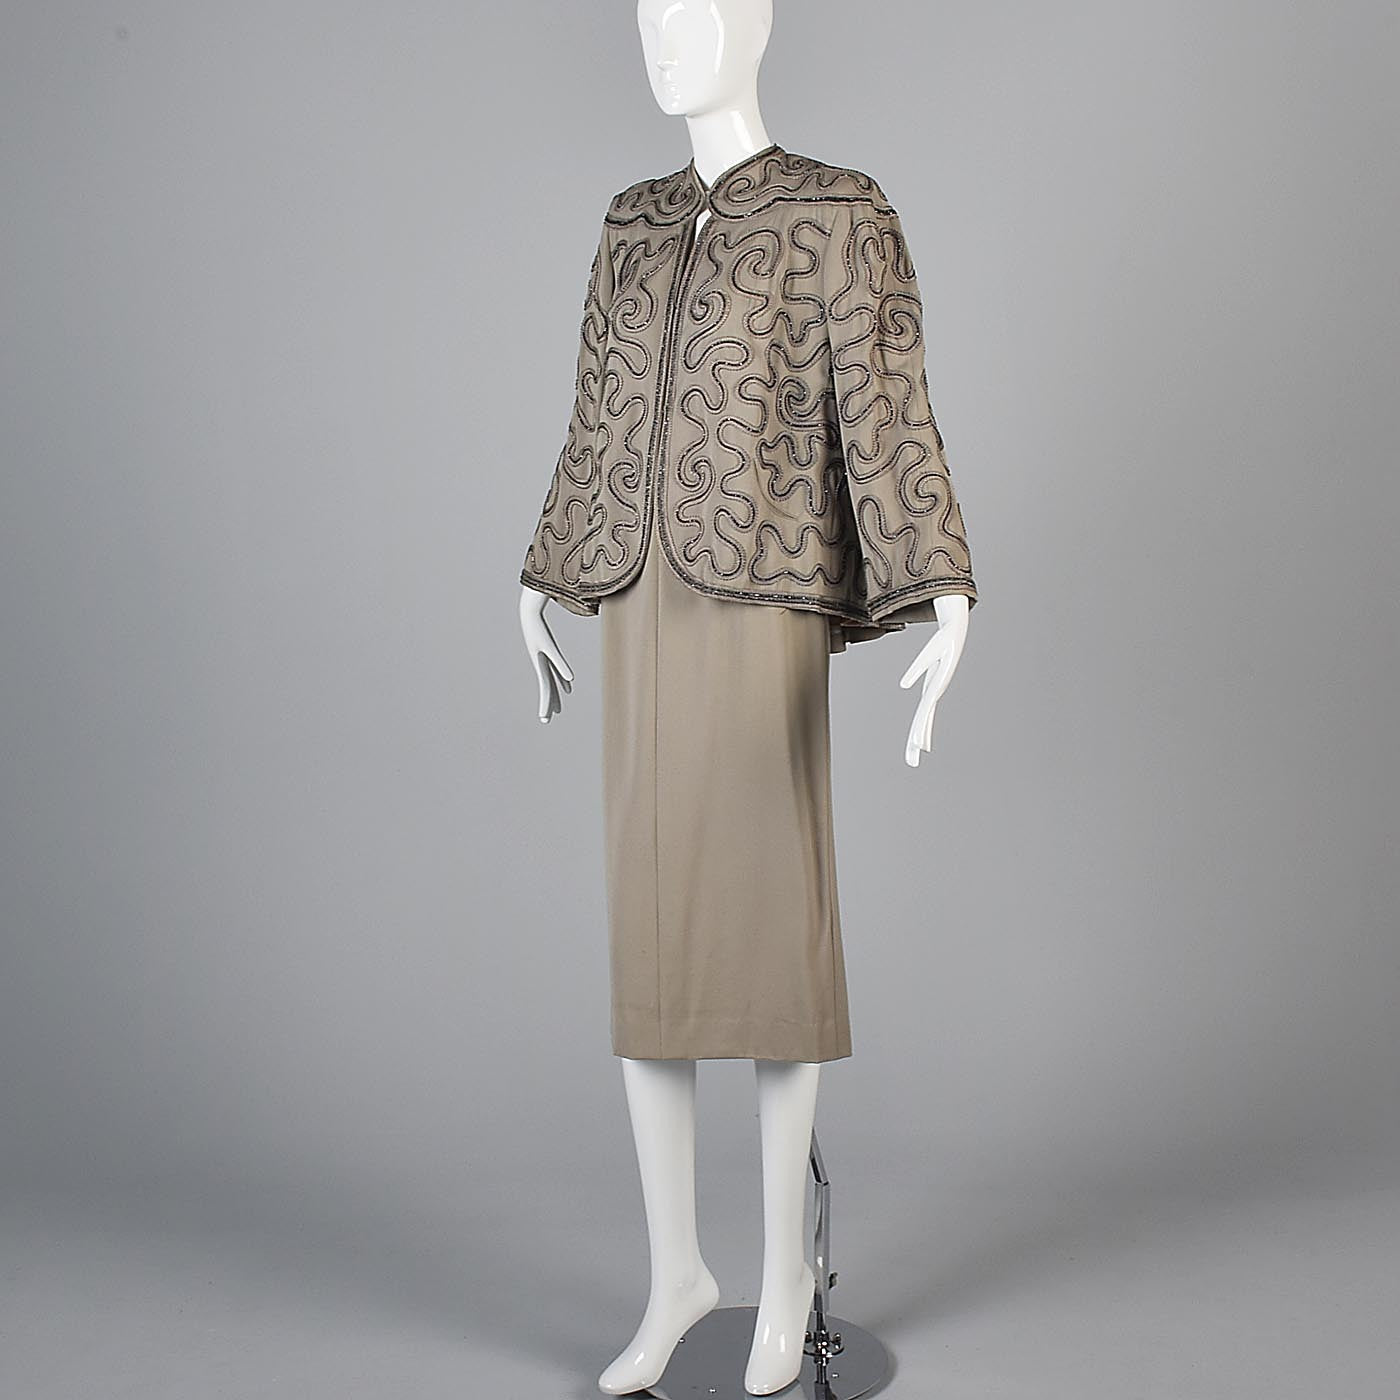 1940s Gabardine Skirt Suit with Swing Jacket